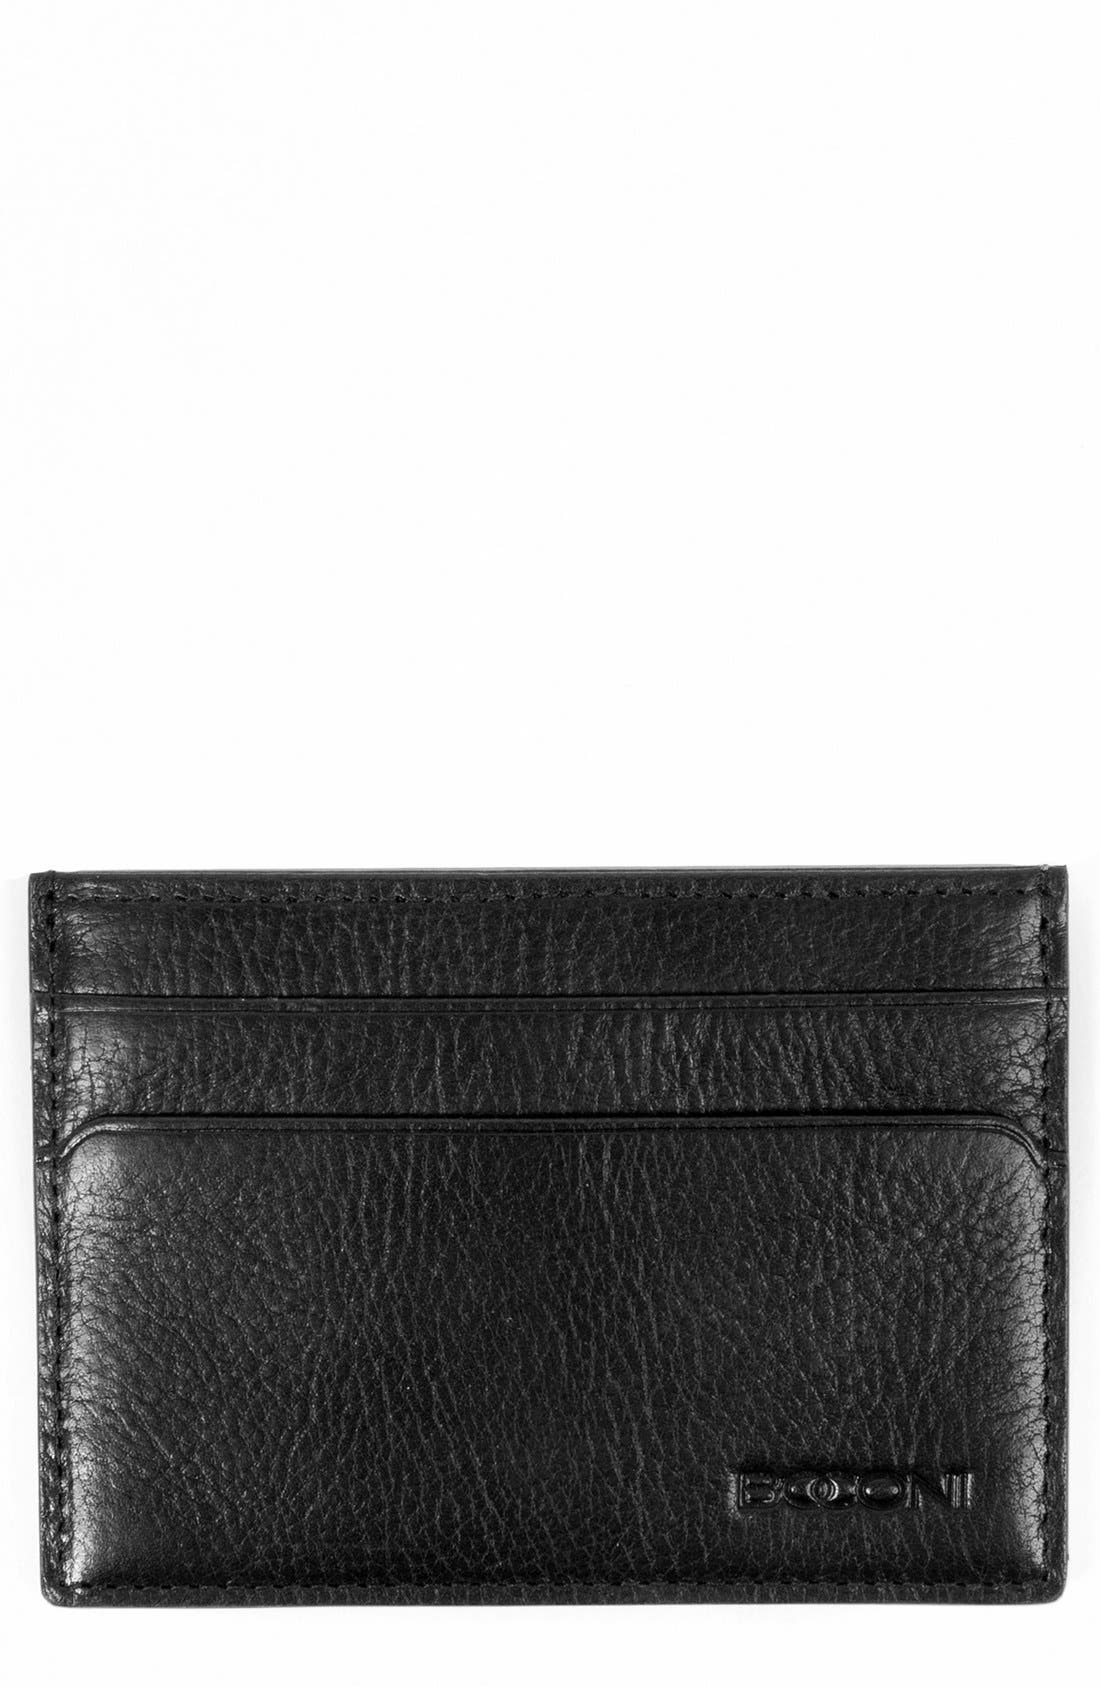 'Becker' RFID Leather Card Case,                         Main,                         color, Black